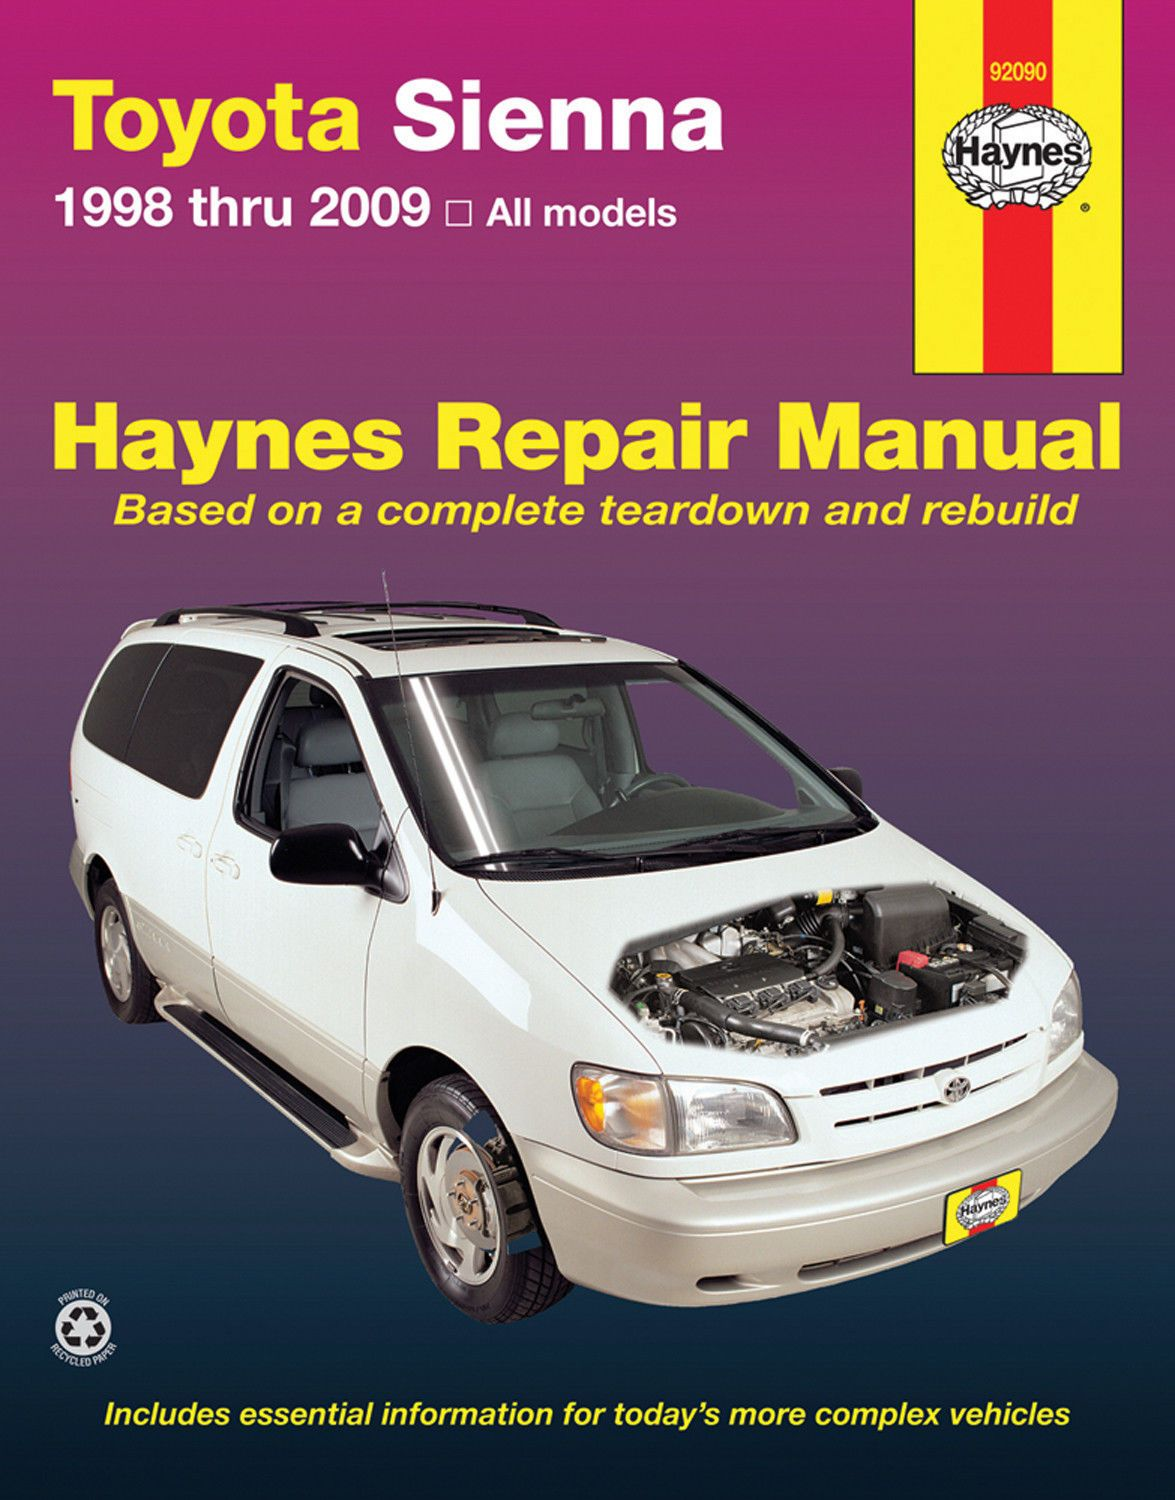 ManualsPRO - Repair Manual Haynes 92090 fits 98-10 ToyotaSienna  https://t.co/2iyn3LsJQM https://t.co/yHGHUgNr2X